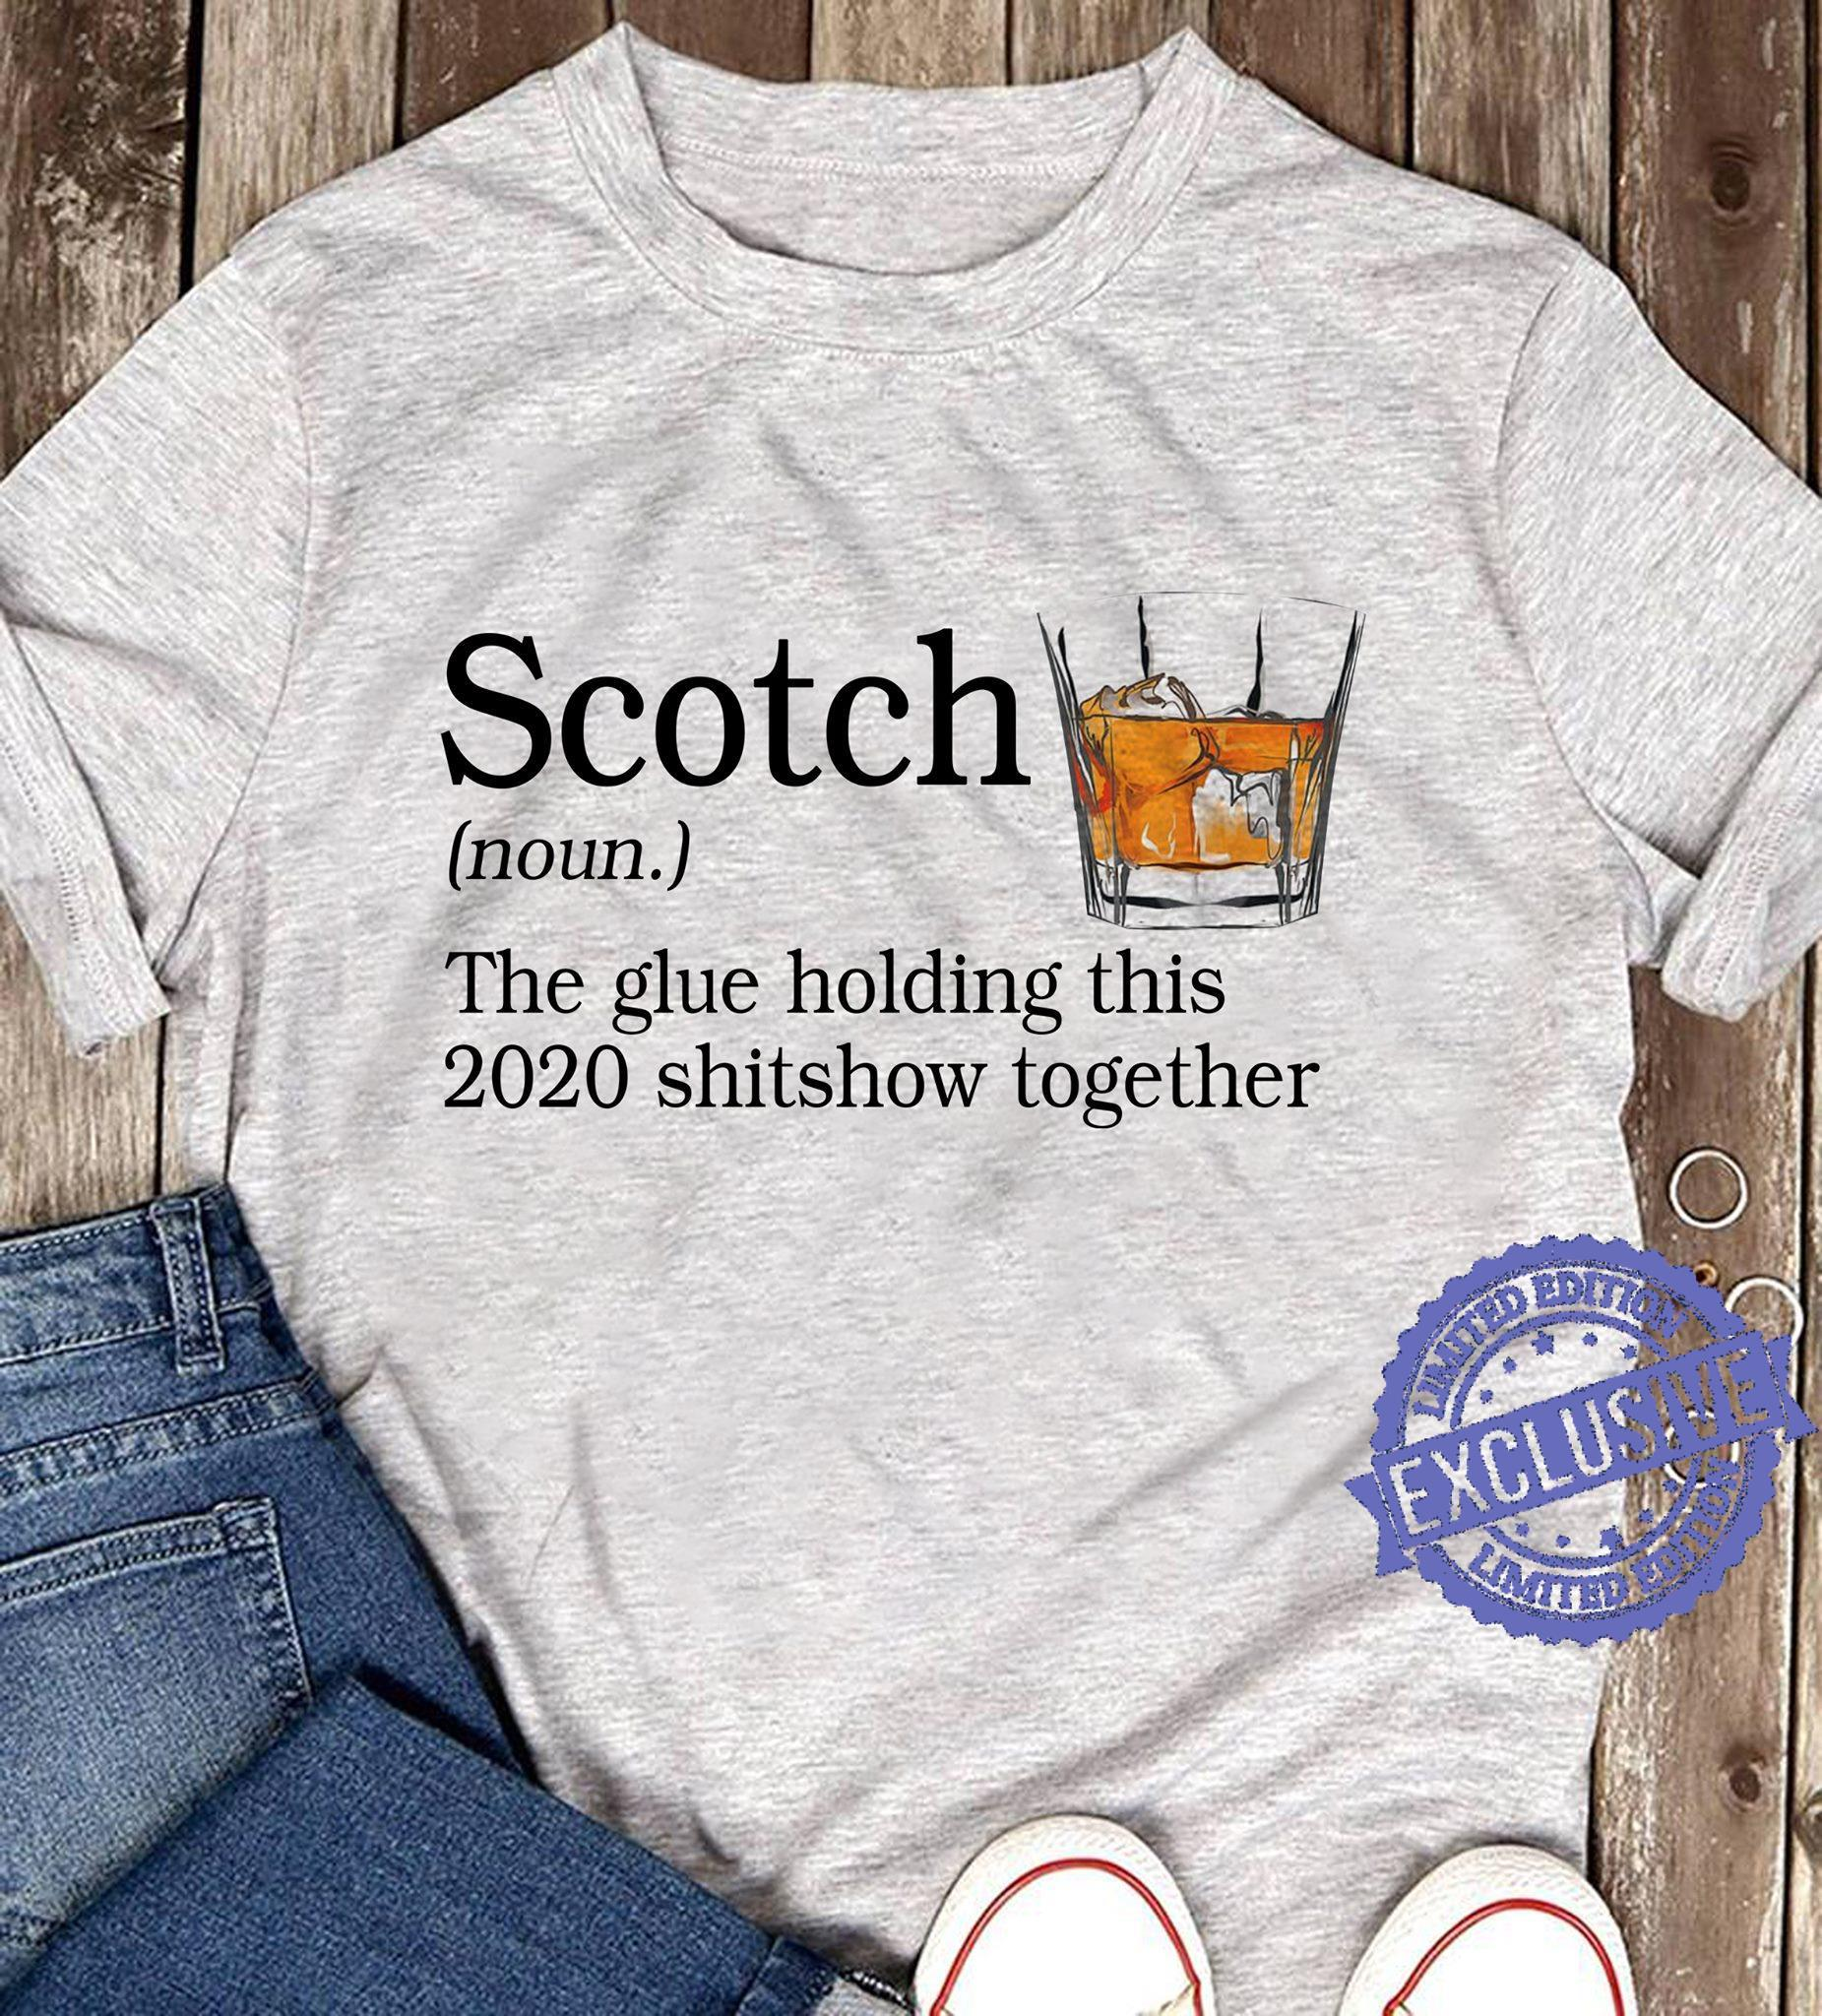 Scotch the glue holding this 2020 shitshow together shirt